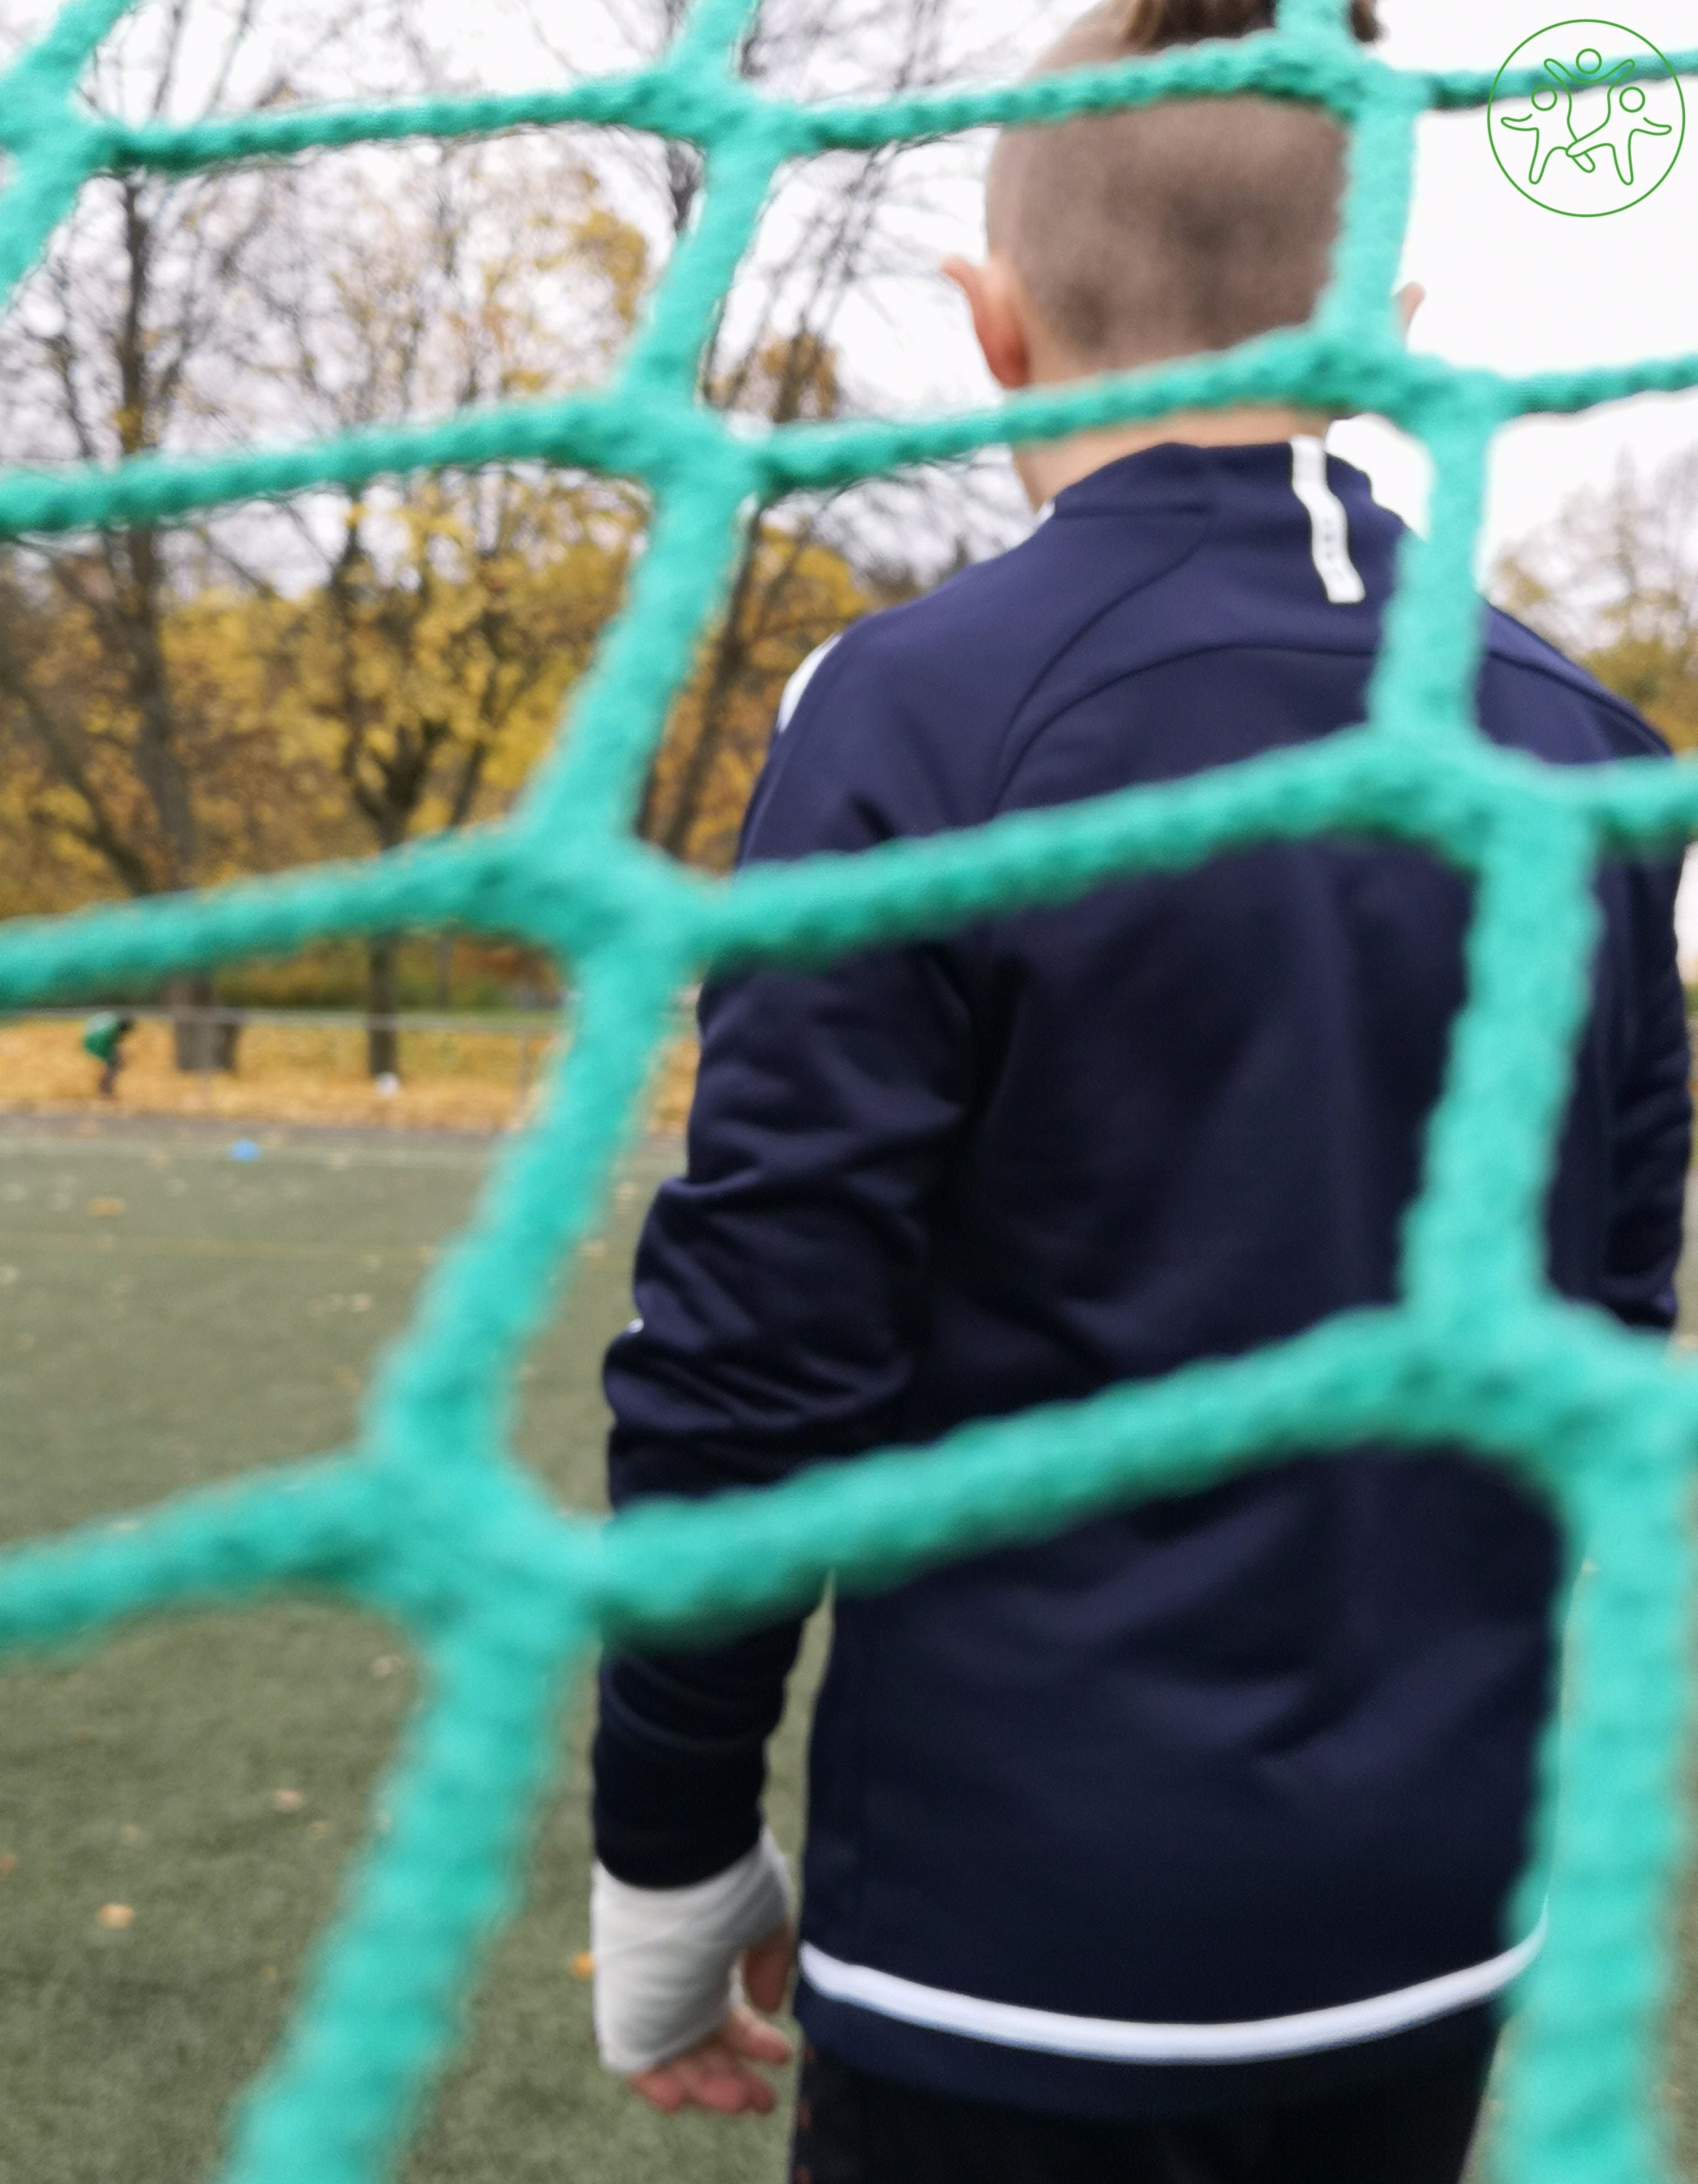 Kinder-Fussball-Wertevermittlung-Spass-Home-of-Goals